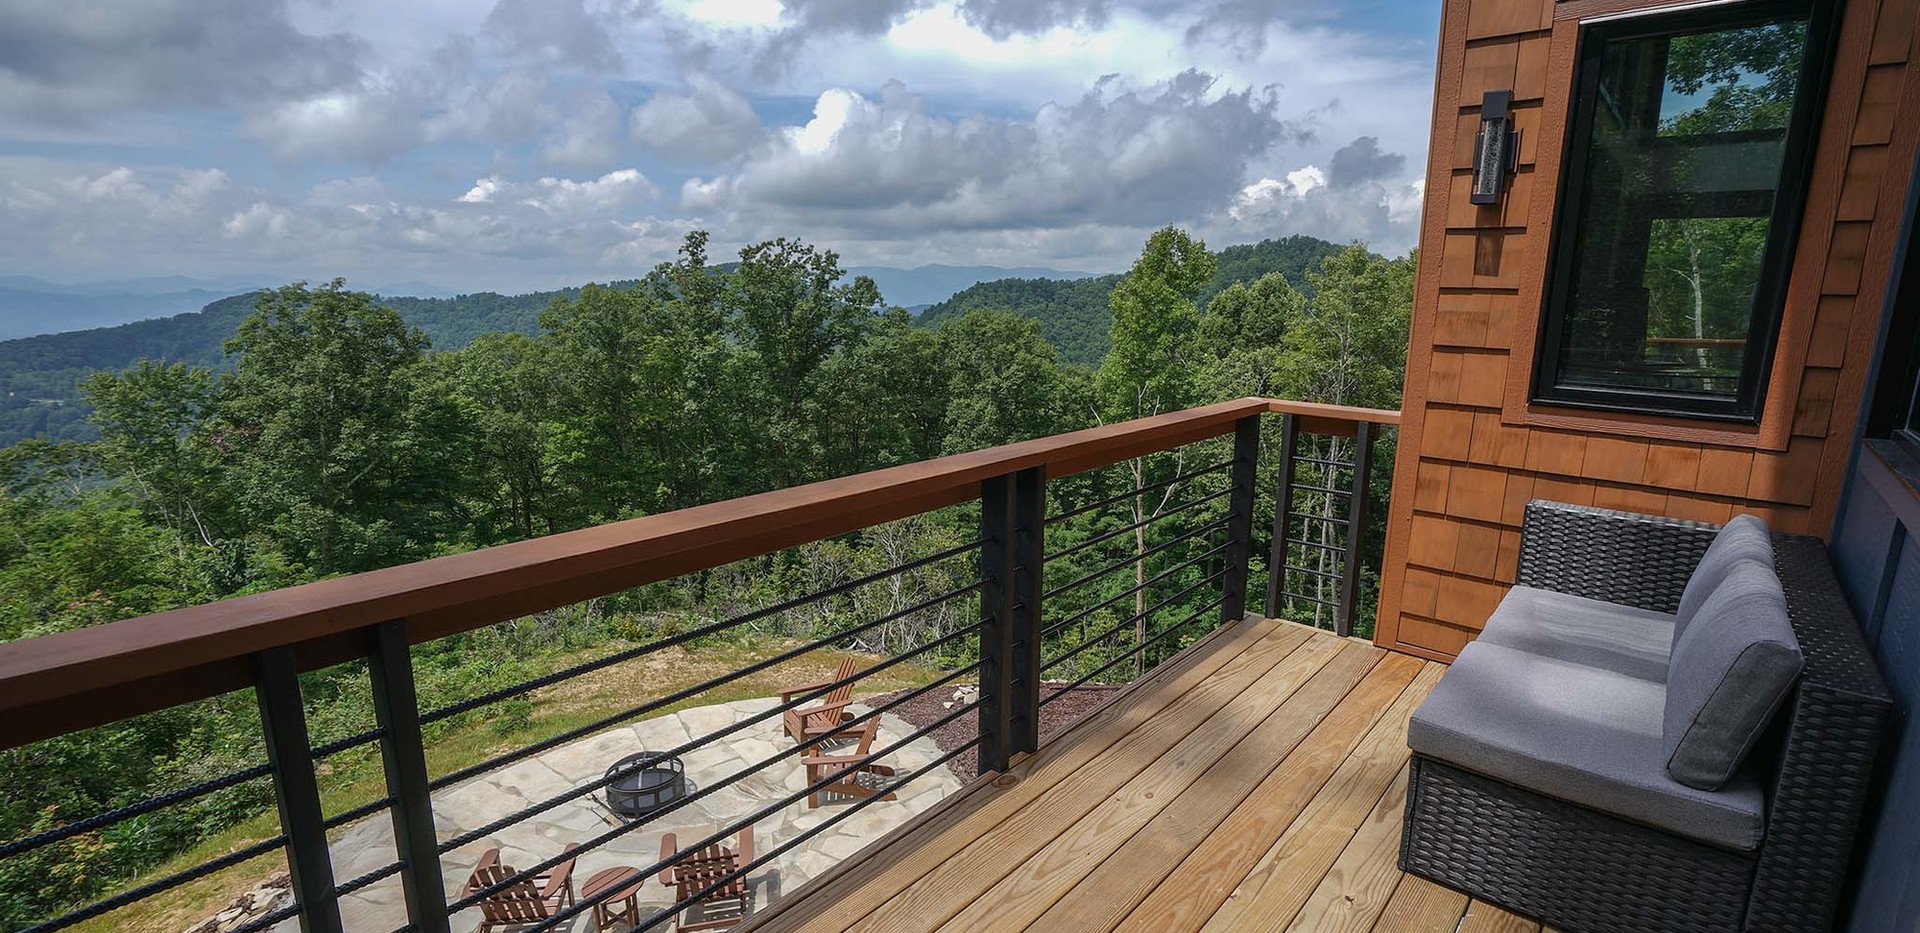 Sunset Falls - master bedroom deck view